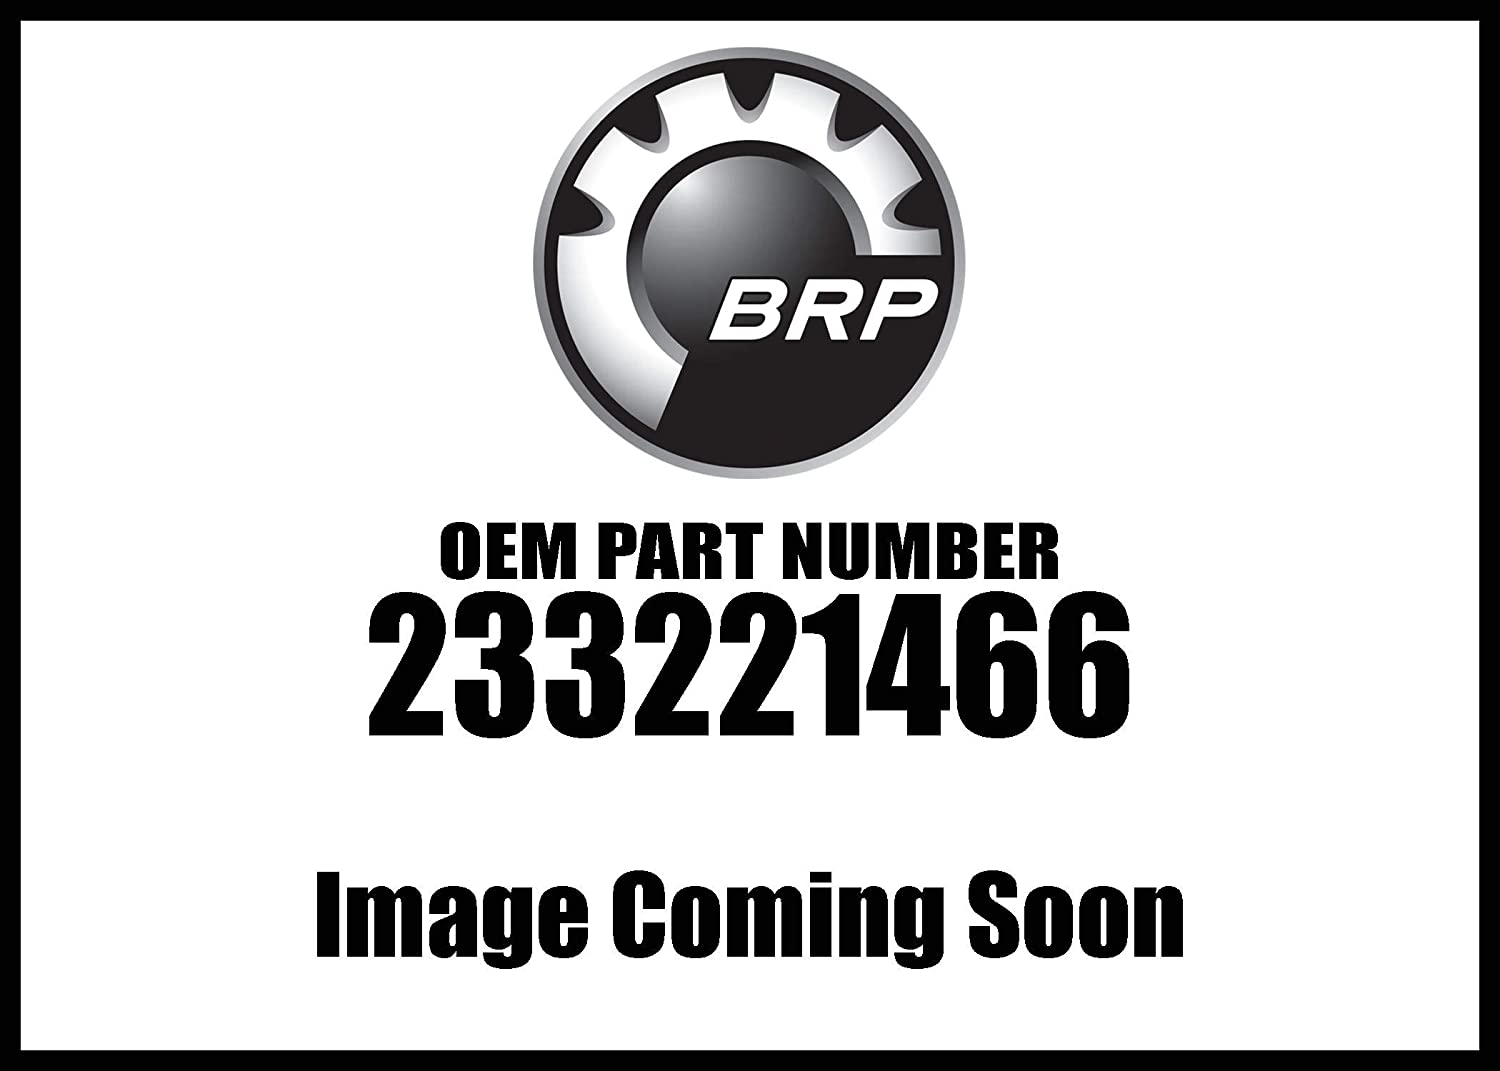 Can-Am 2017-2018 Maverick X3 Turbo Maverick Trail 1000 Elastic Flange Nut M12 233221466 New Oem